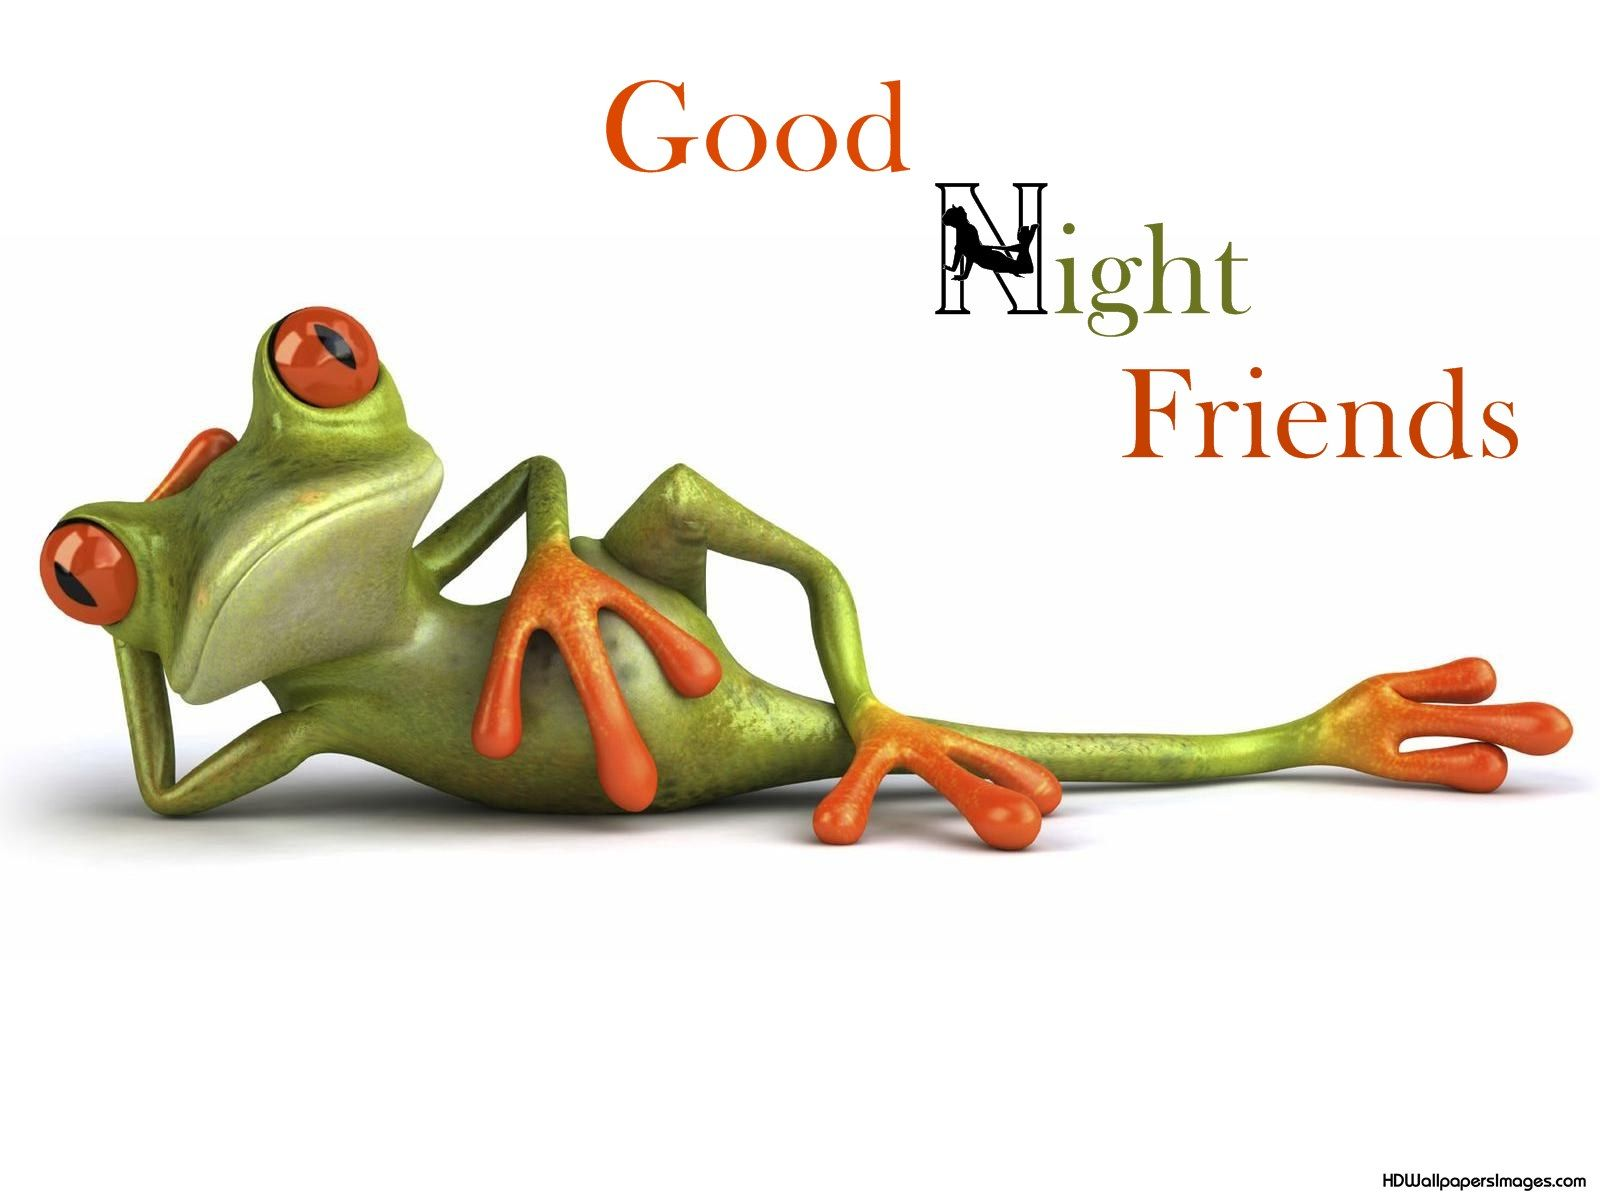 Good Night Friends Hd Wallpapers Images Good Night Friends Good Night Funny Funny Good Night Images